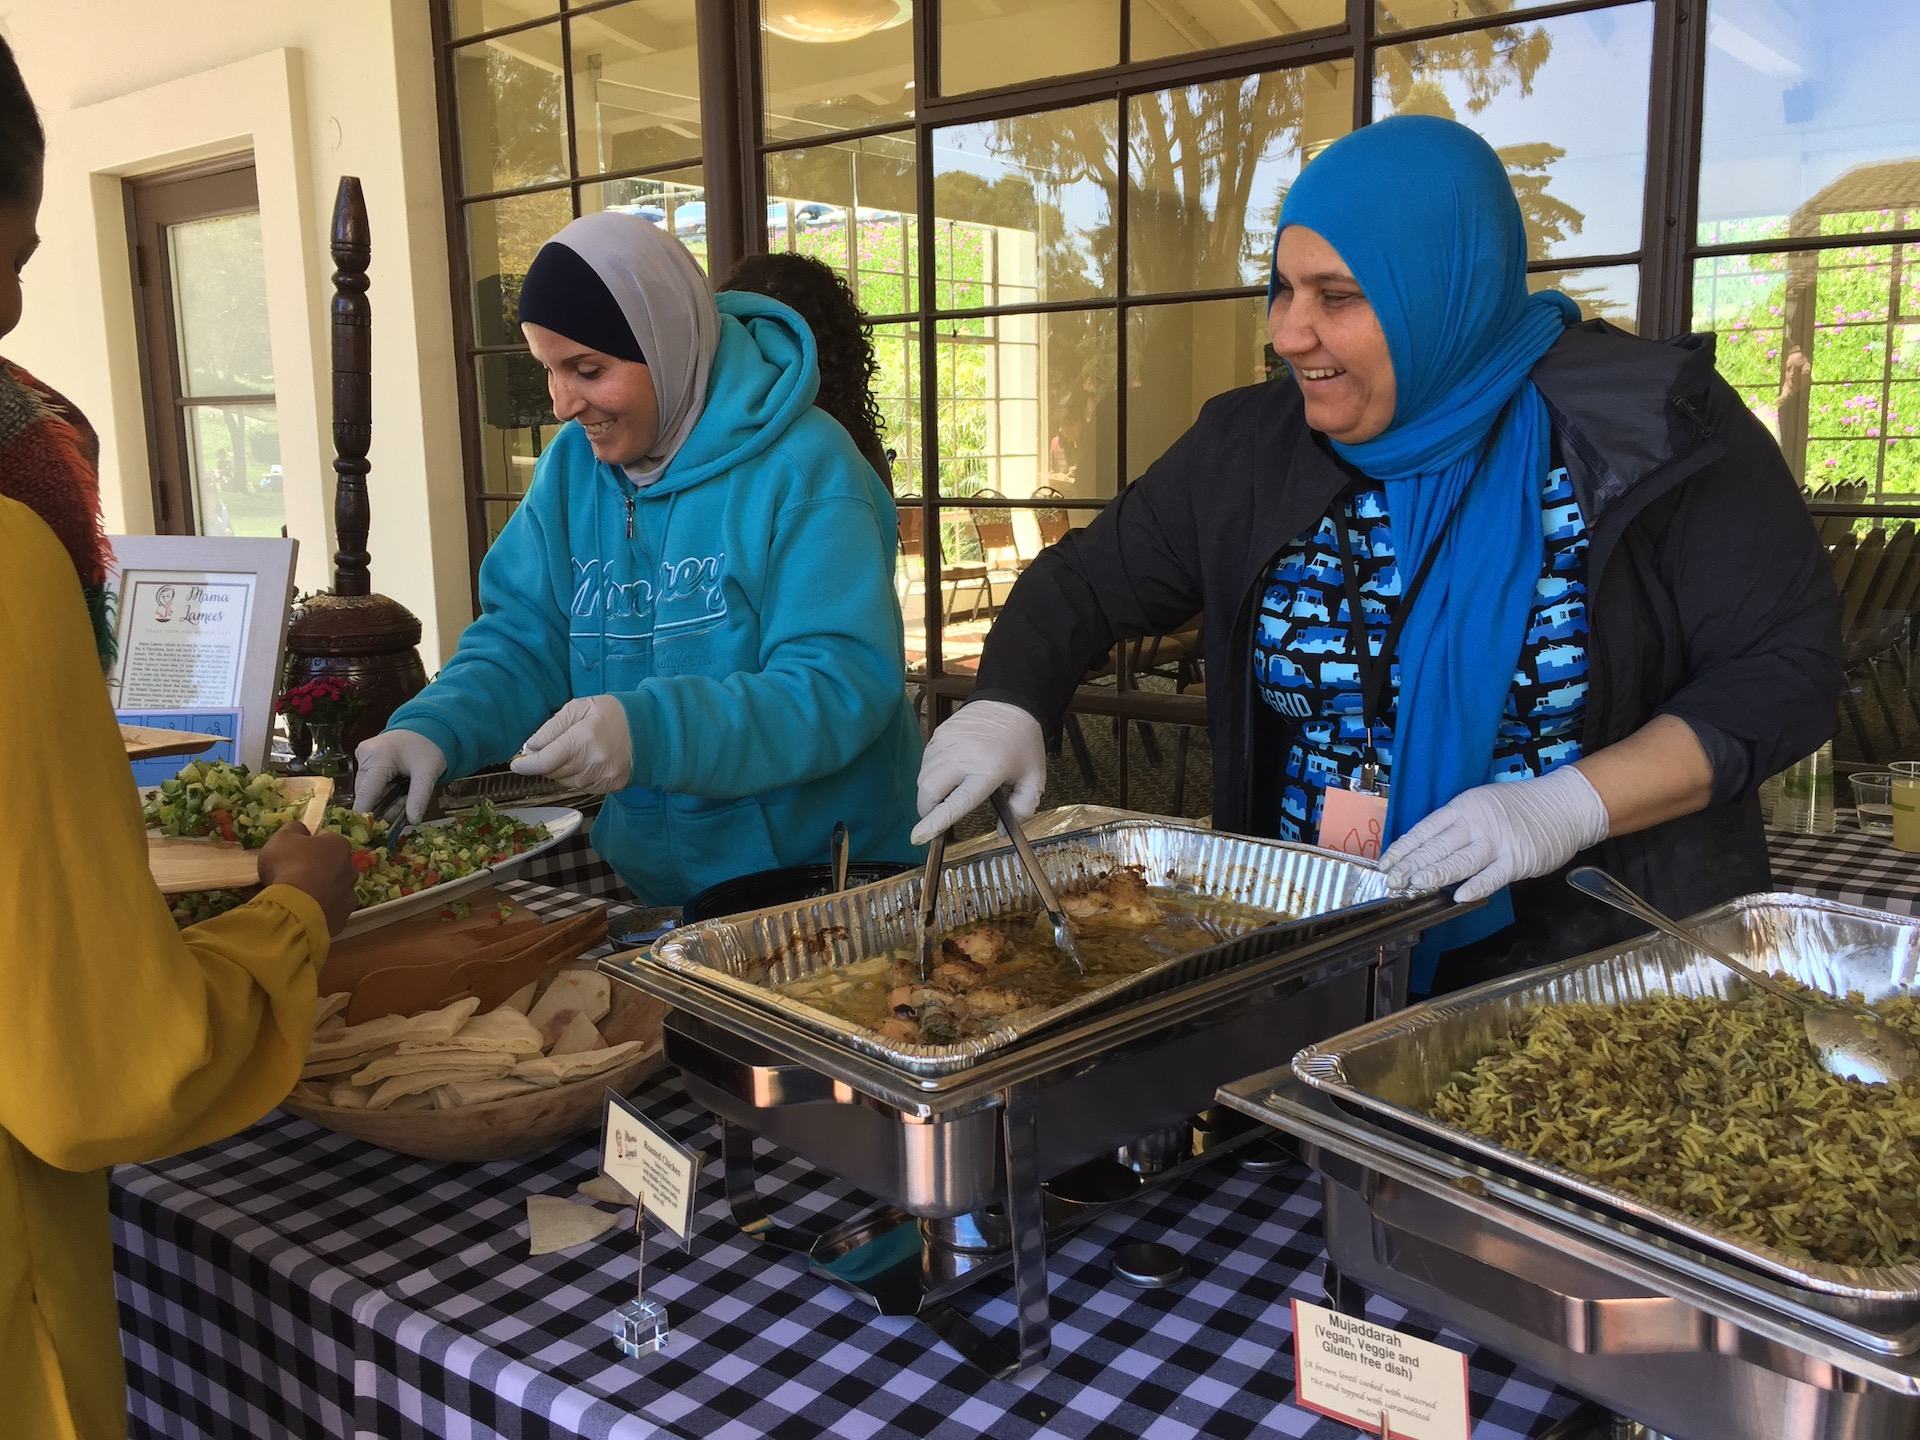 Lunch featured graduates of La Cocina's incubator kitchen project, including Mama Lamees Palestinian cuisine